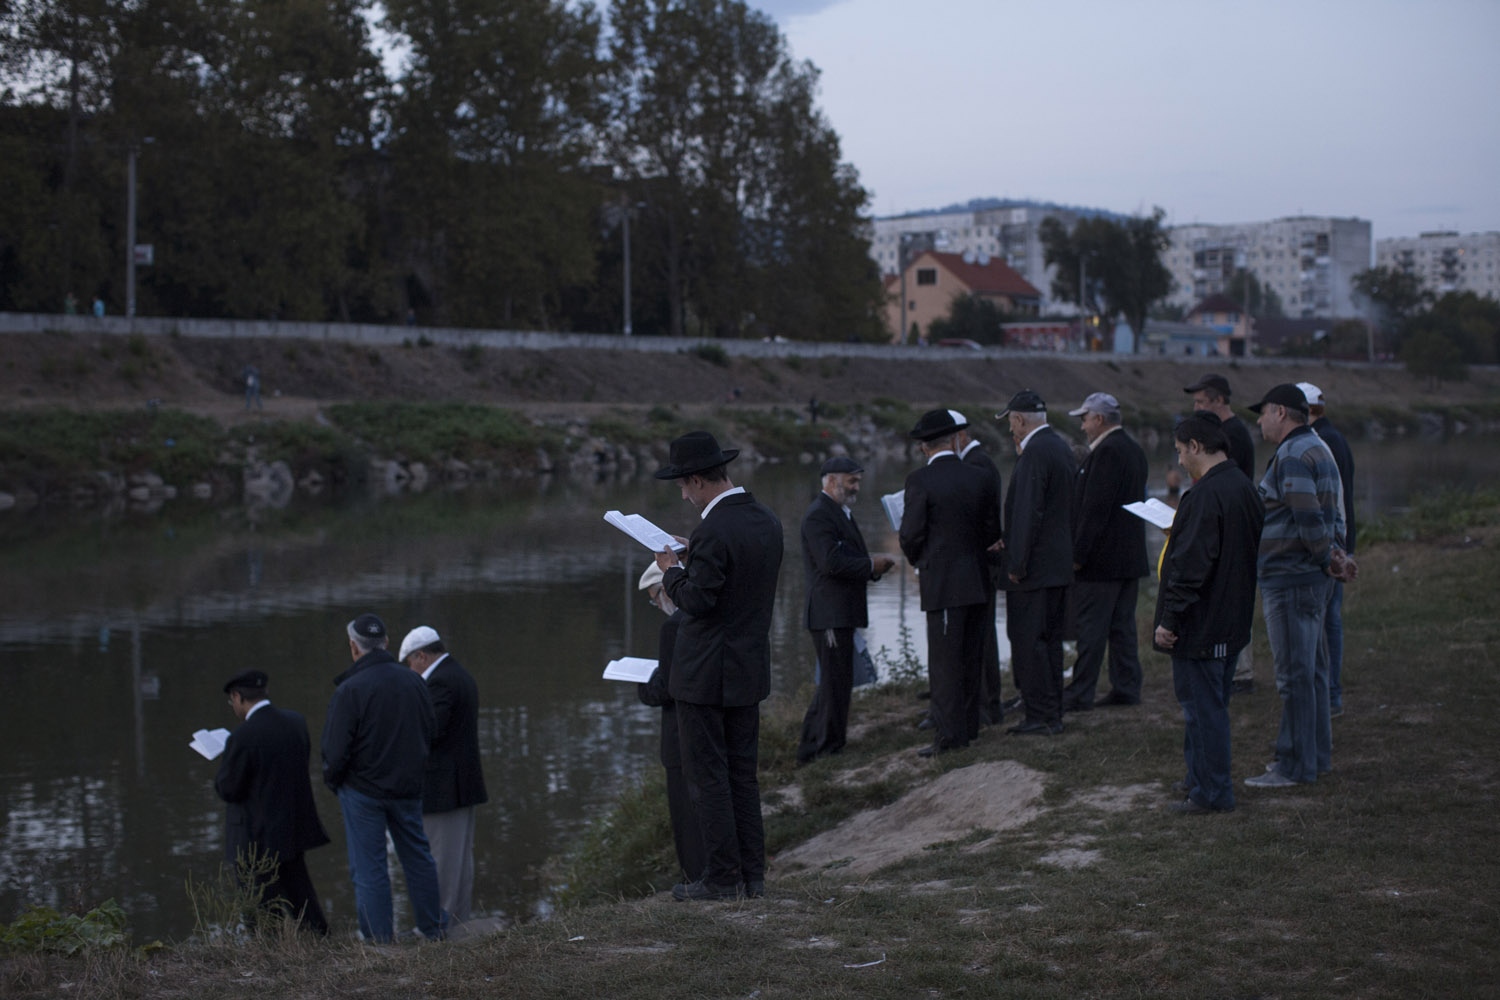 Jews gather in Mukacheve for the ritual of Tashlich. On the first day of the year, it is tradition to go to a river (or to a lake, as long as it has fish in it), and cast the sins and misconceptions of the past year into the water.